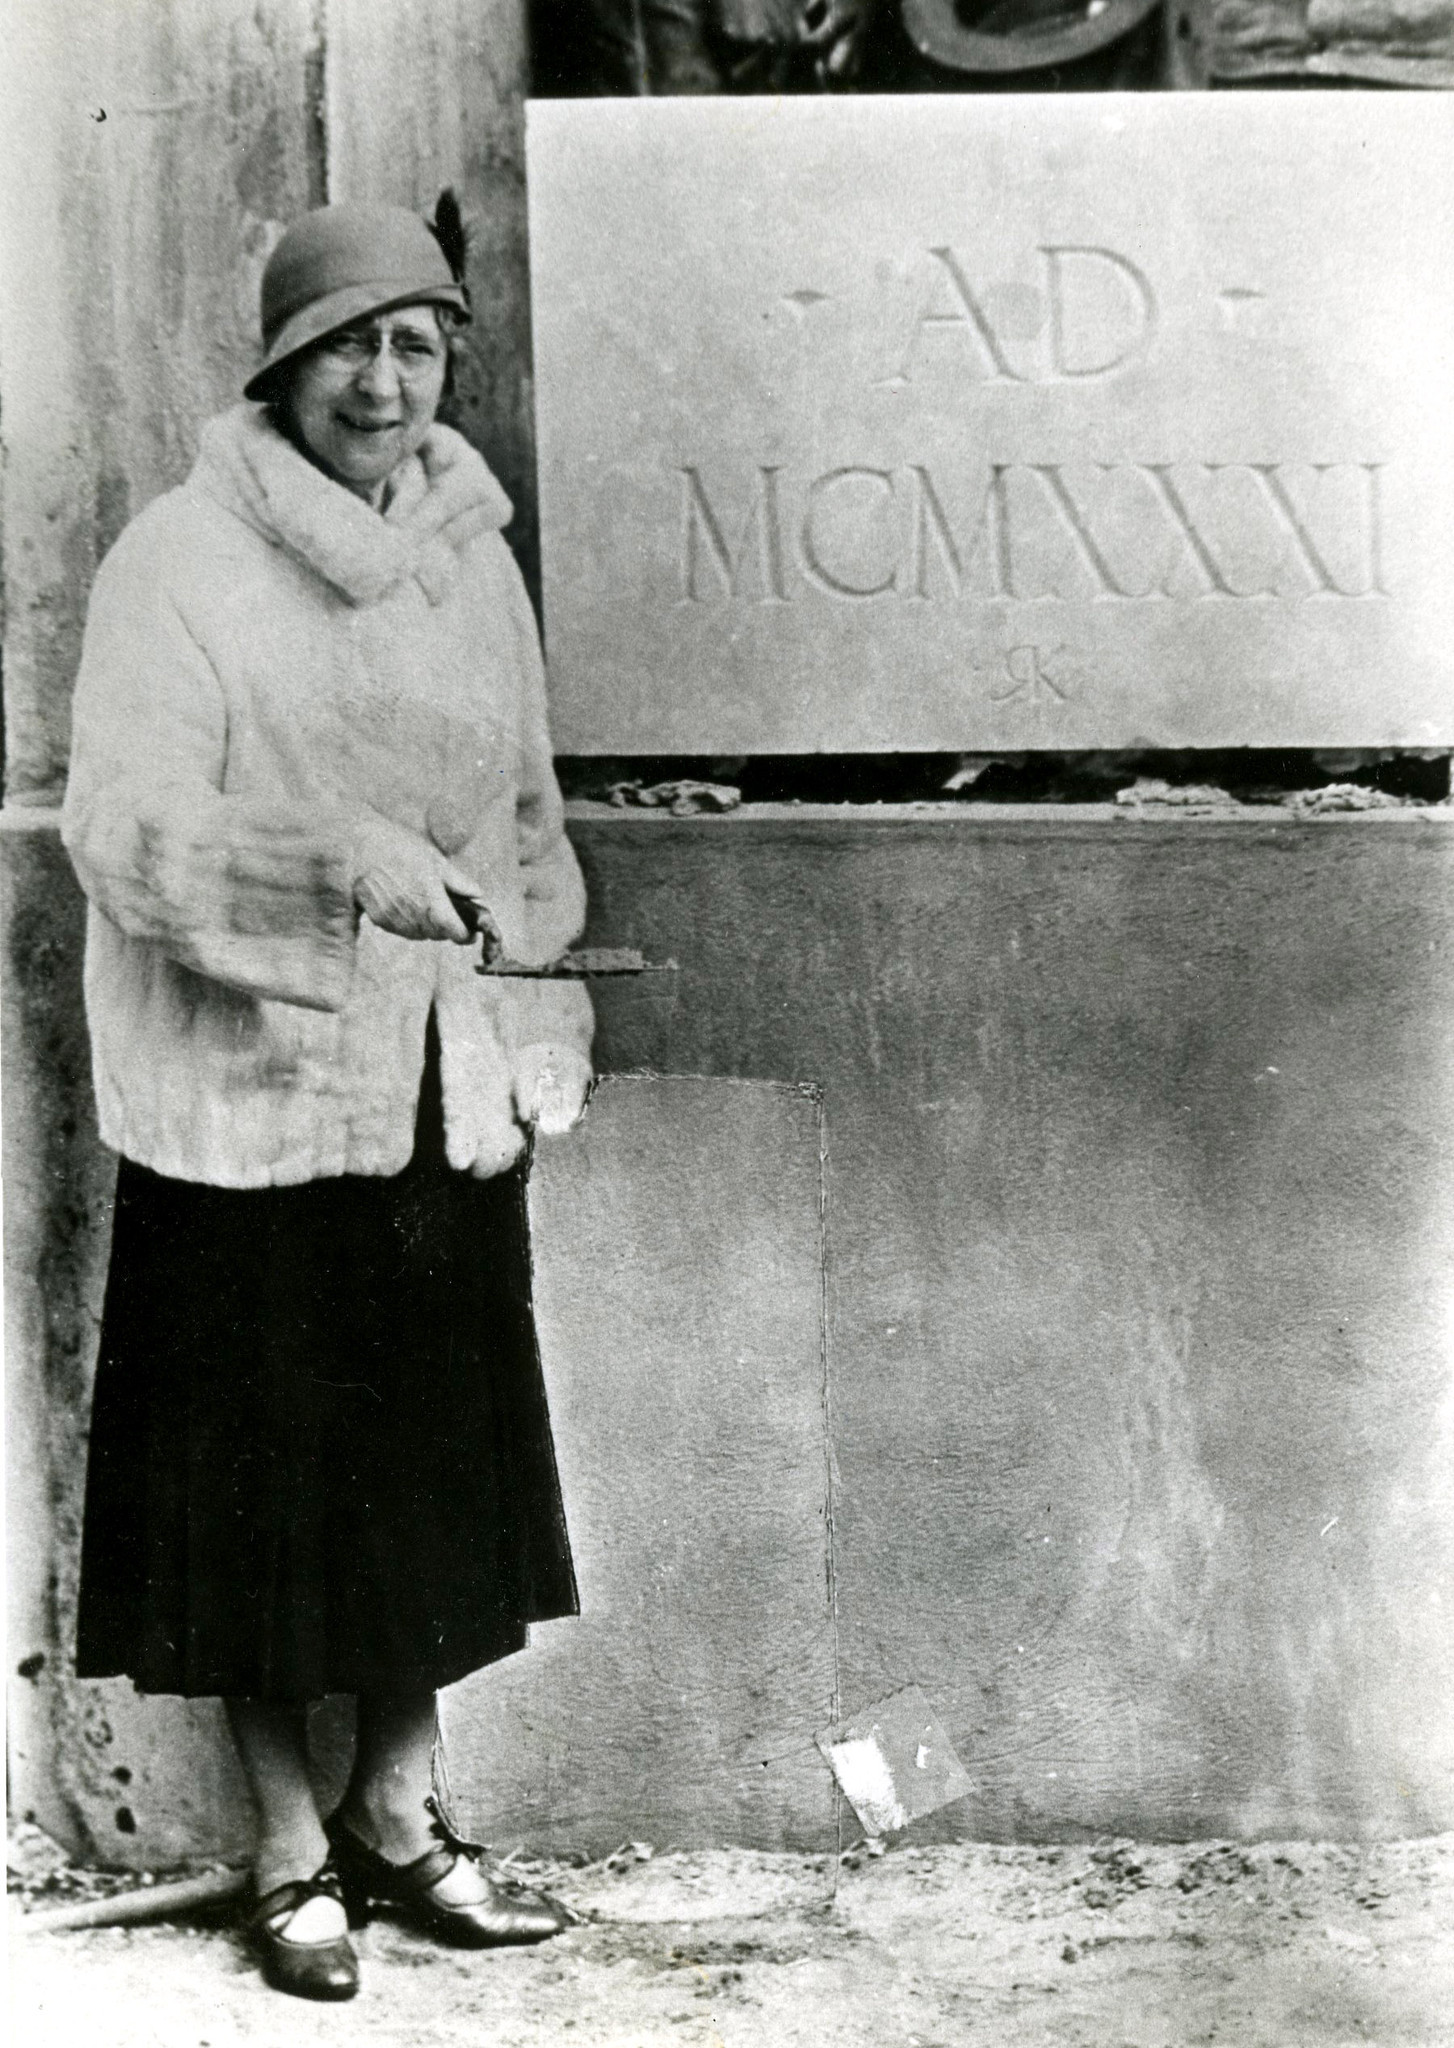 Annie Russell in 1931, at the the ceremony commemorating the laying of the cornerstone for the new theater